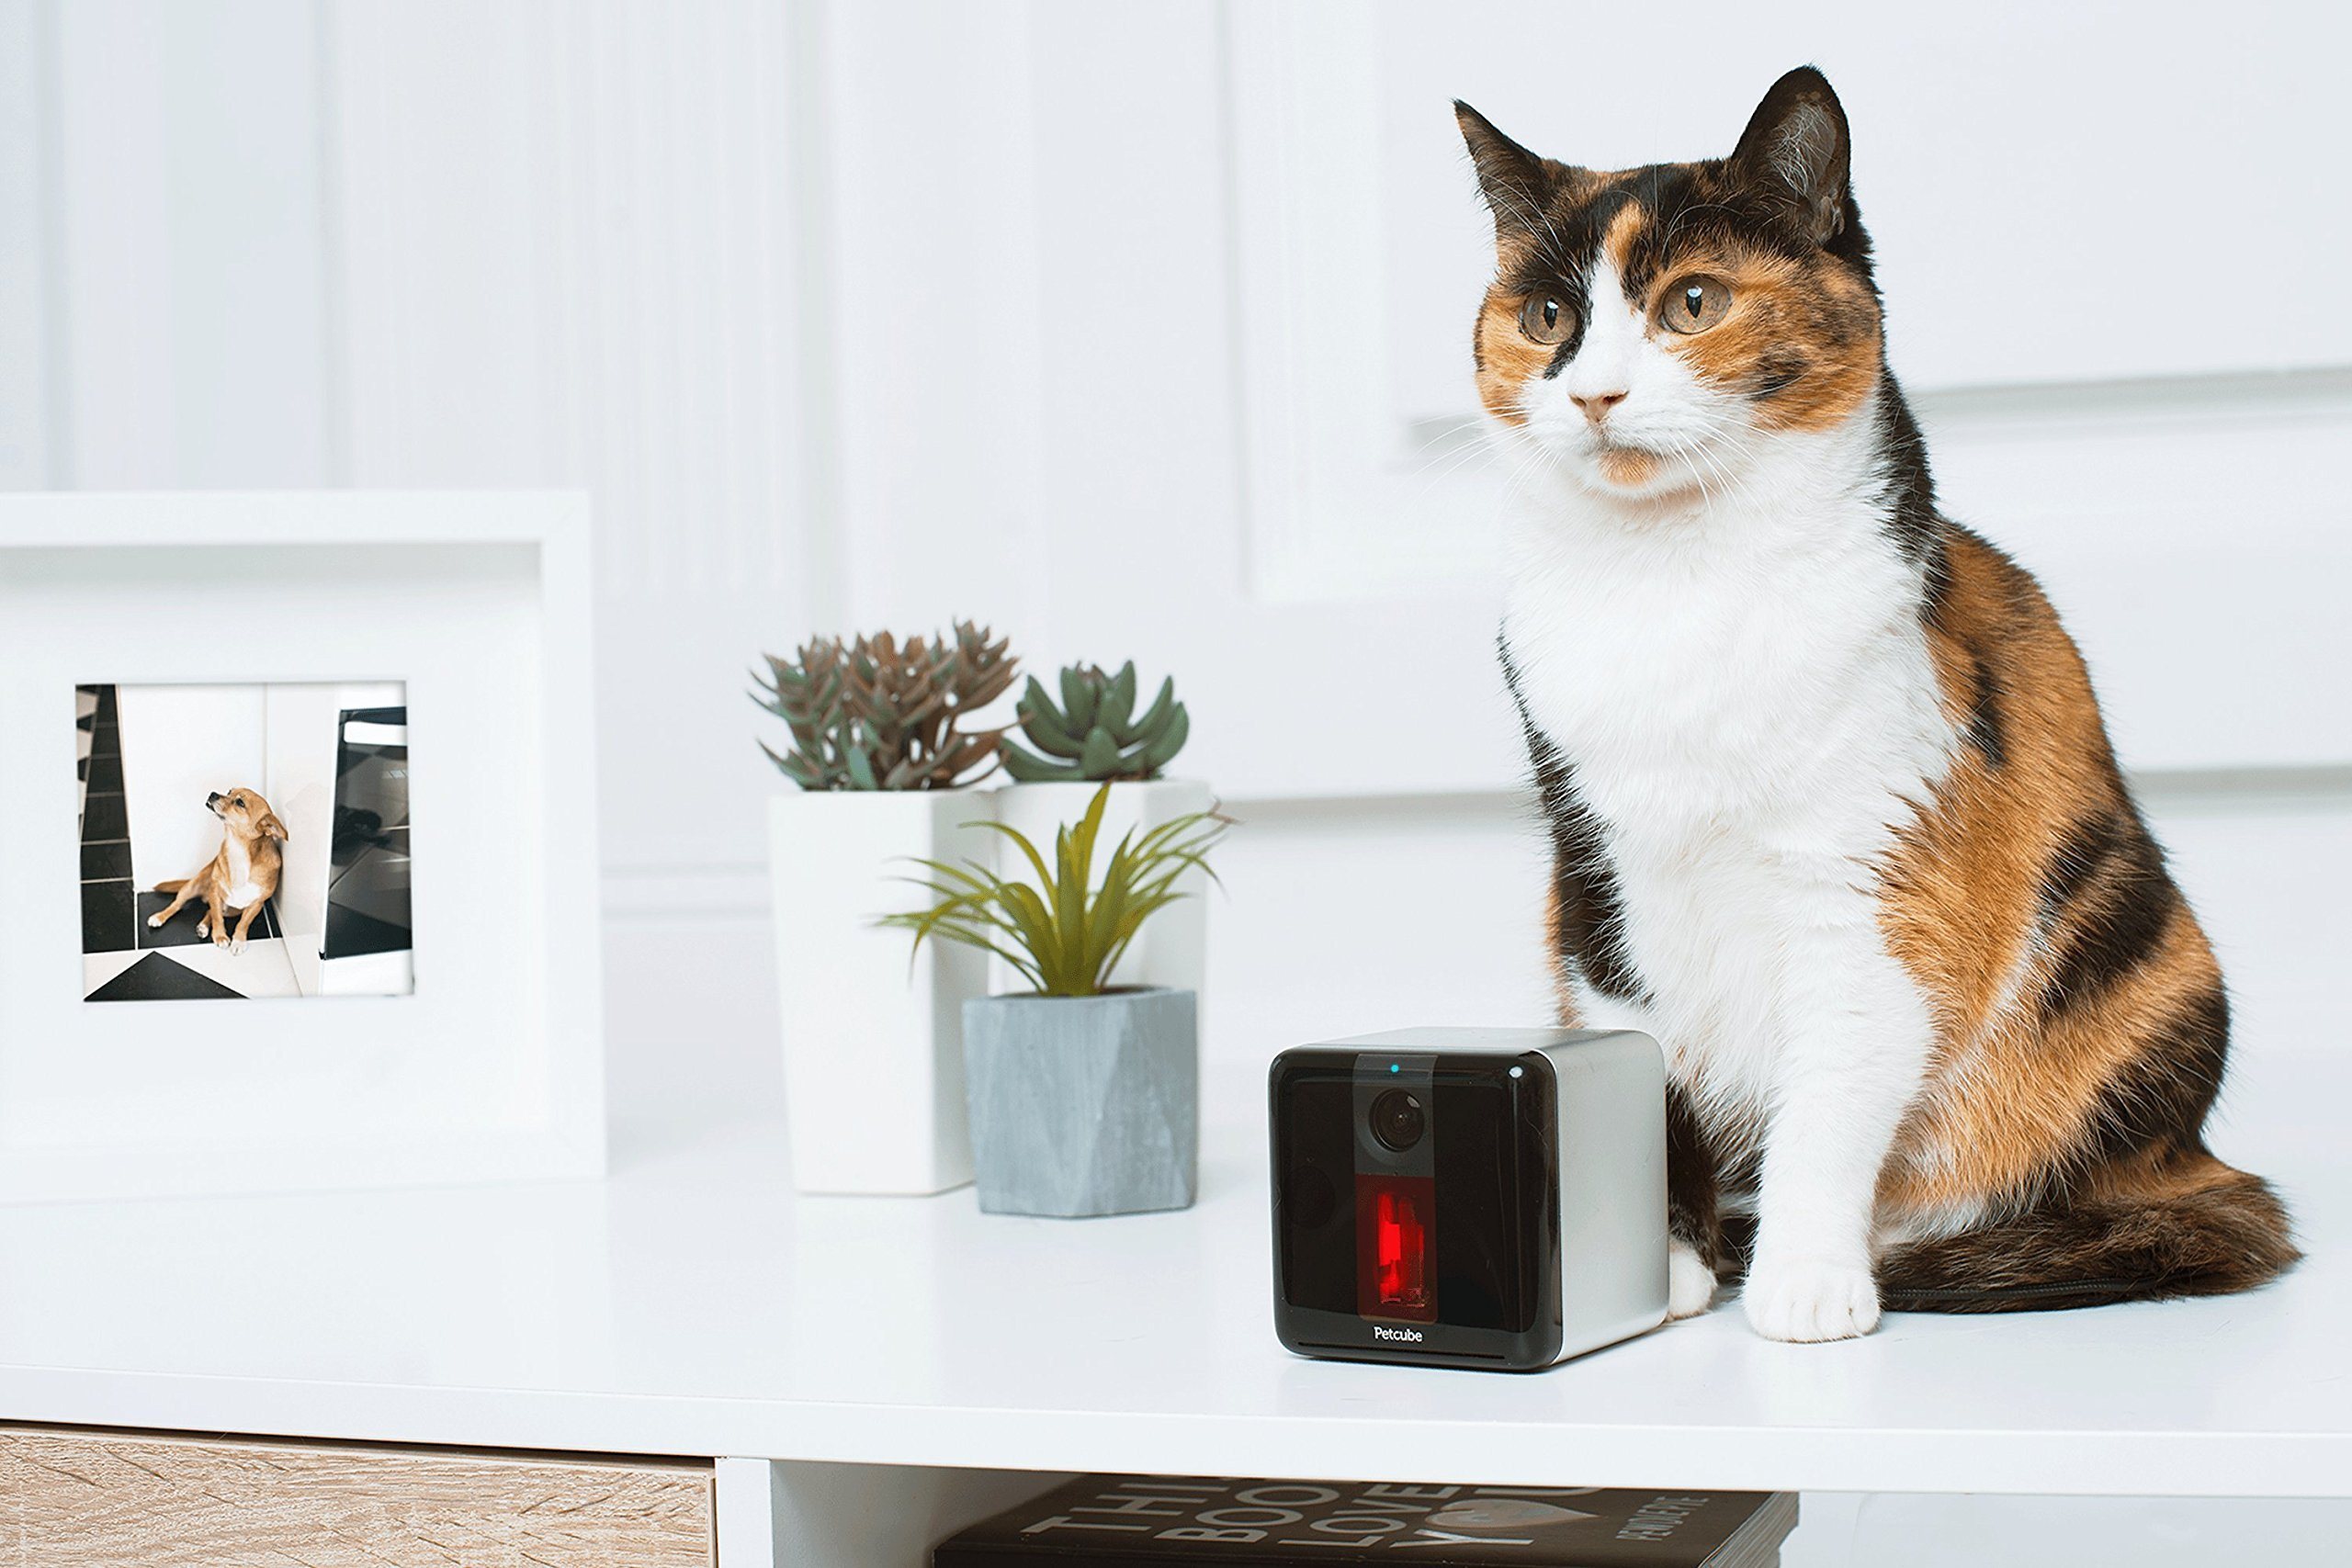 Petcube Play Pet Camera with Interactive Laser Toy. Monitor Your Pet Remotely with HD 1080p Video, Two-Way Audio, Night Vision, Sound and Motion Alerts. Compatible with Alexa (Renewed) by Petcube (Image #2)